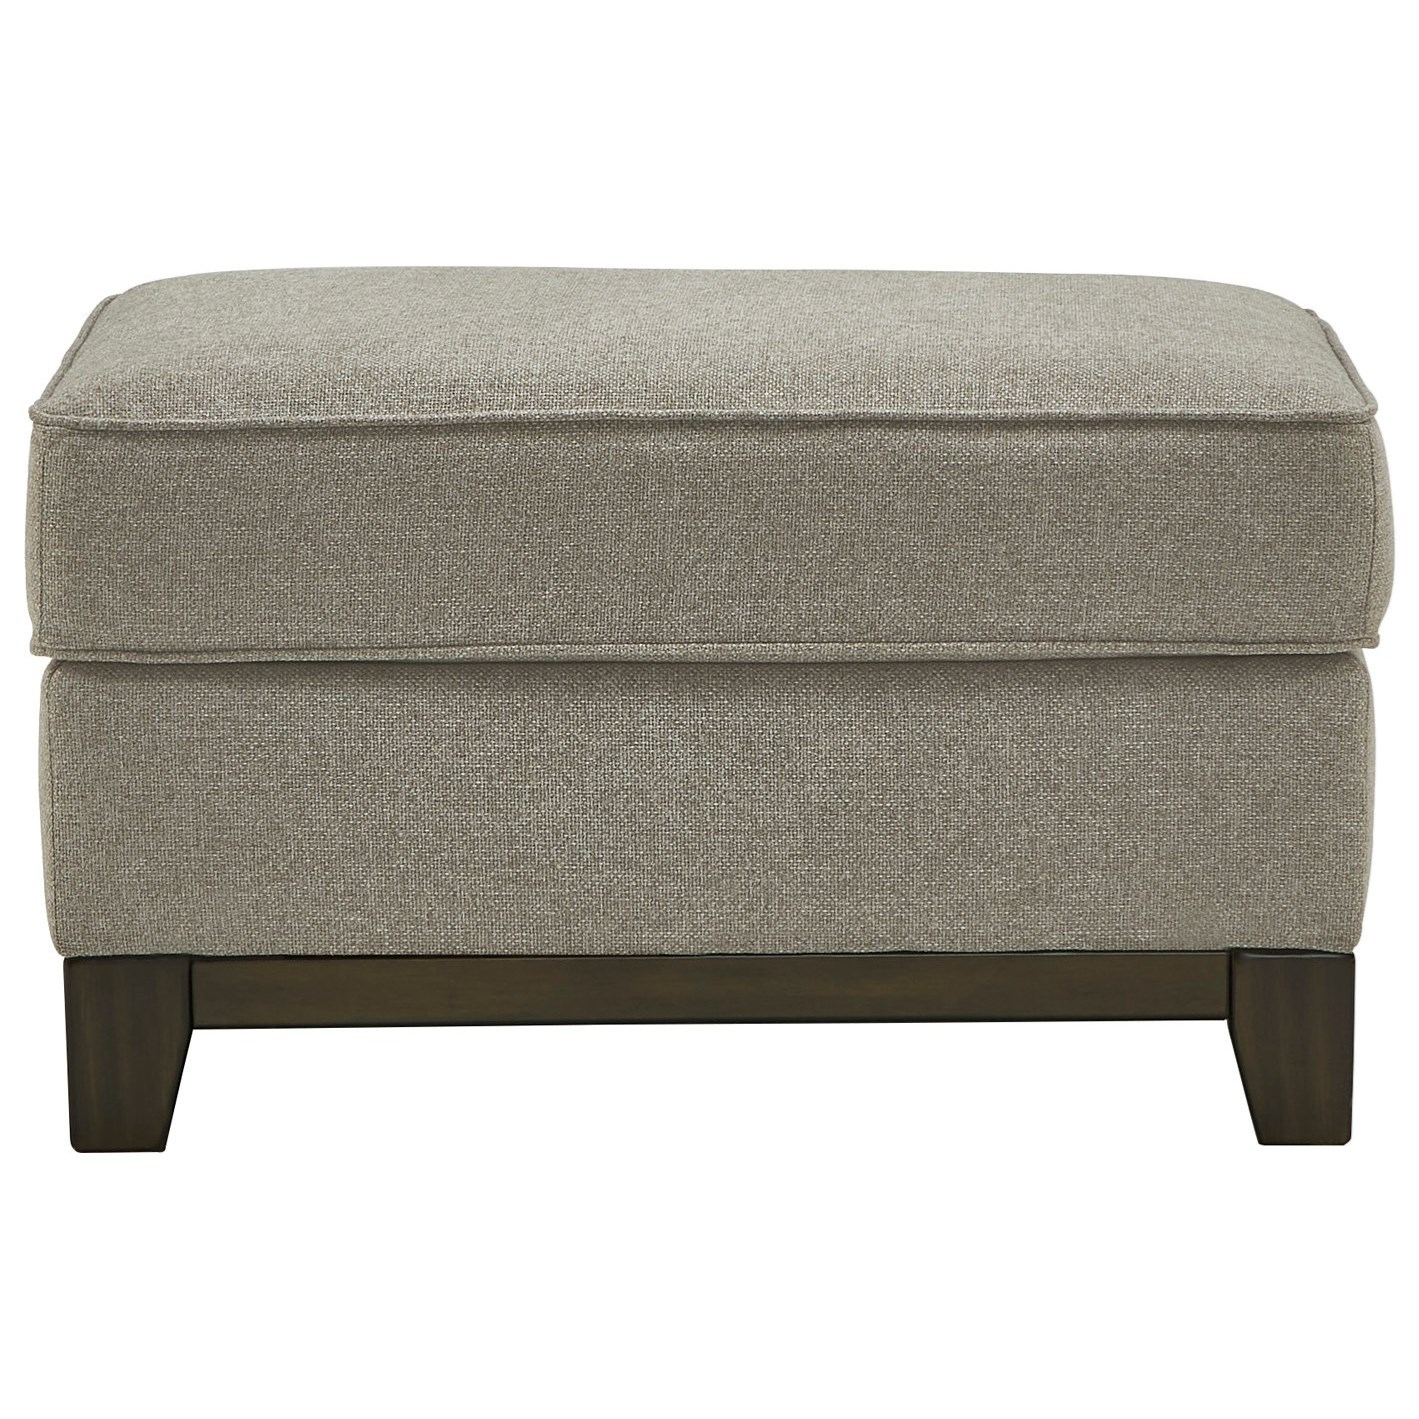 Kaywood Ottoman by Signature at Walker's Furniture